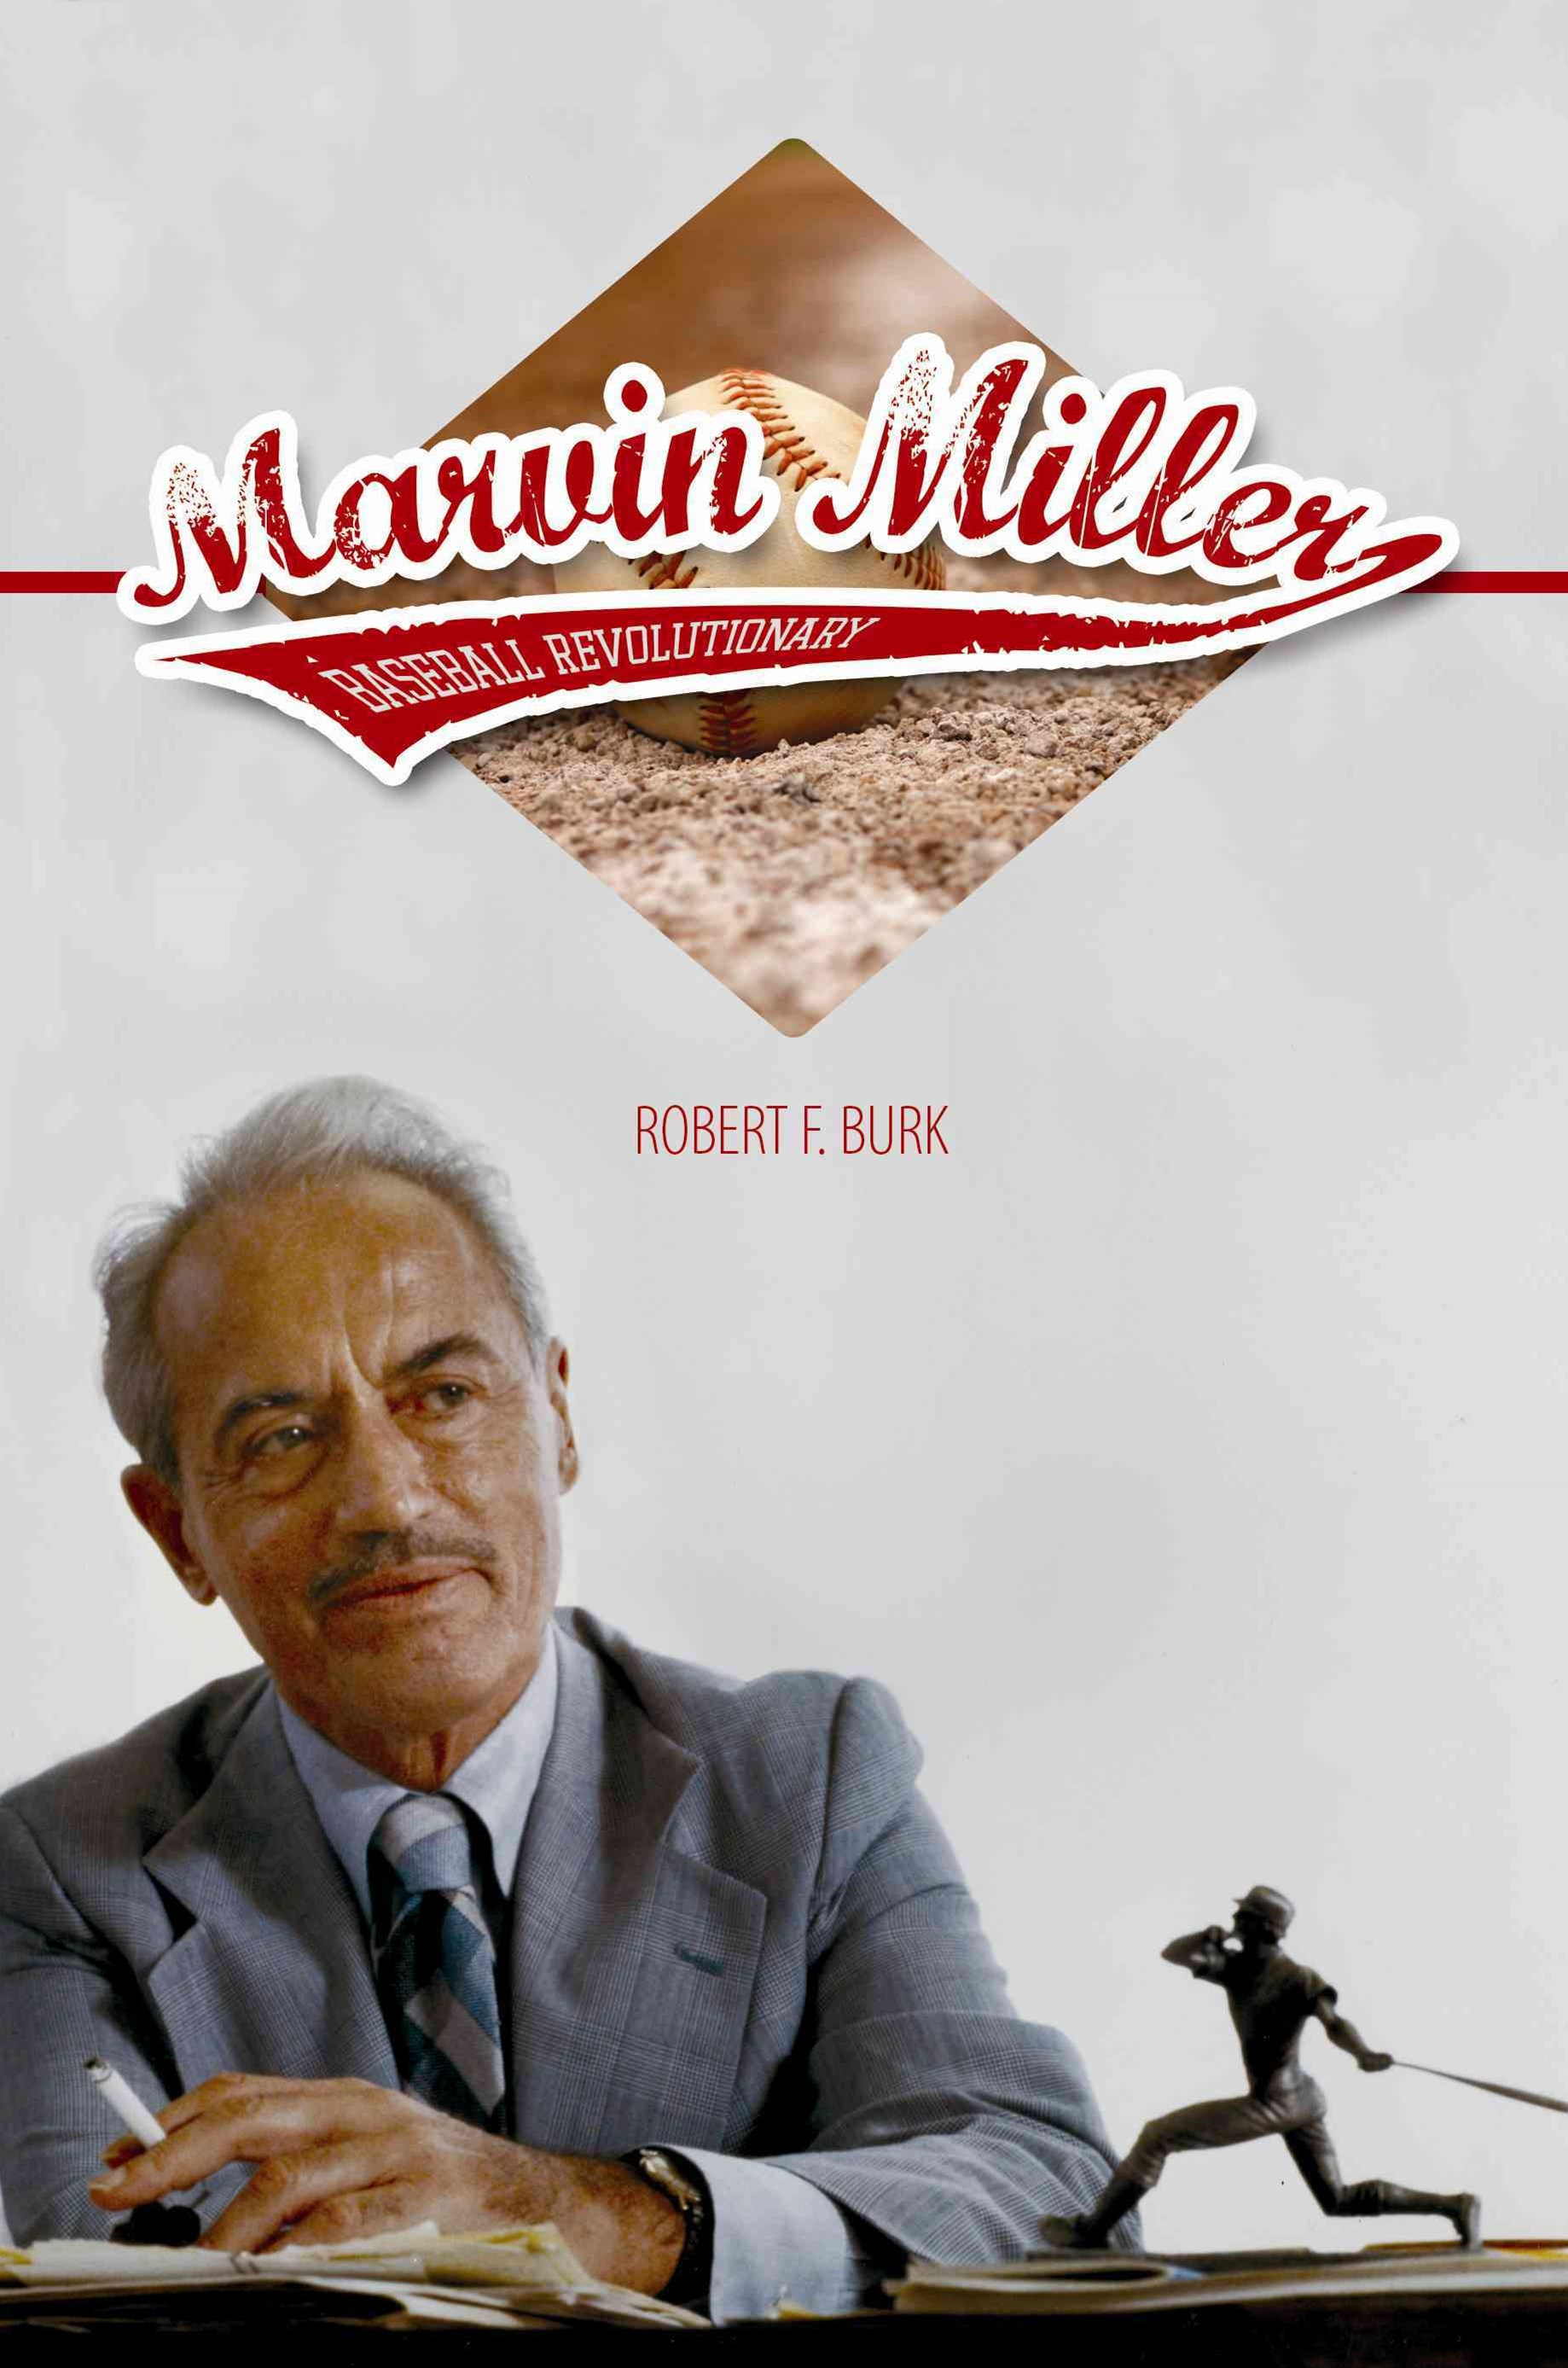 Marvin Miller, Baseball Revolutionary